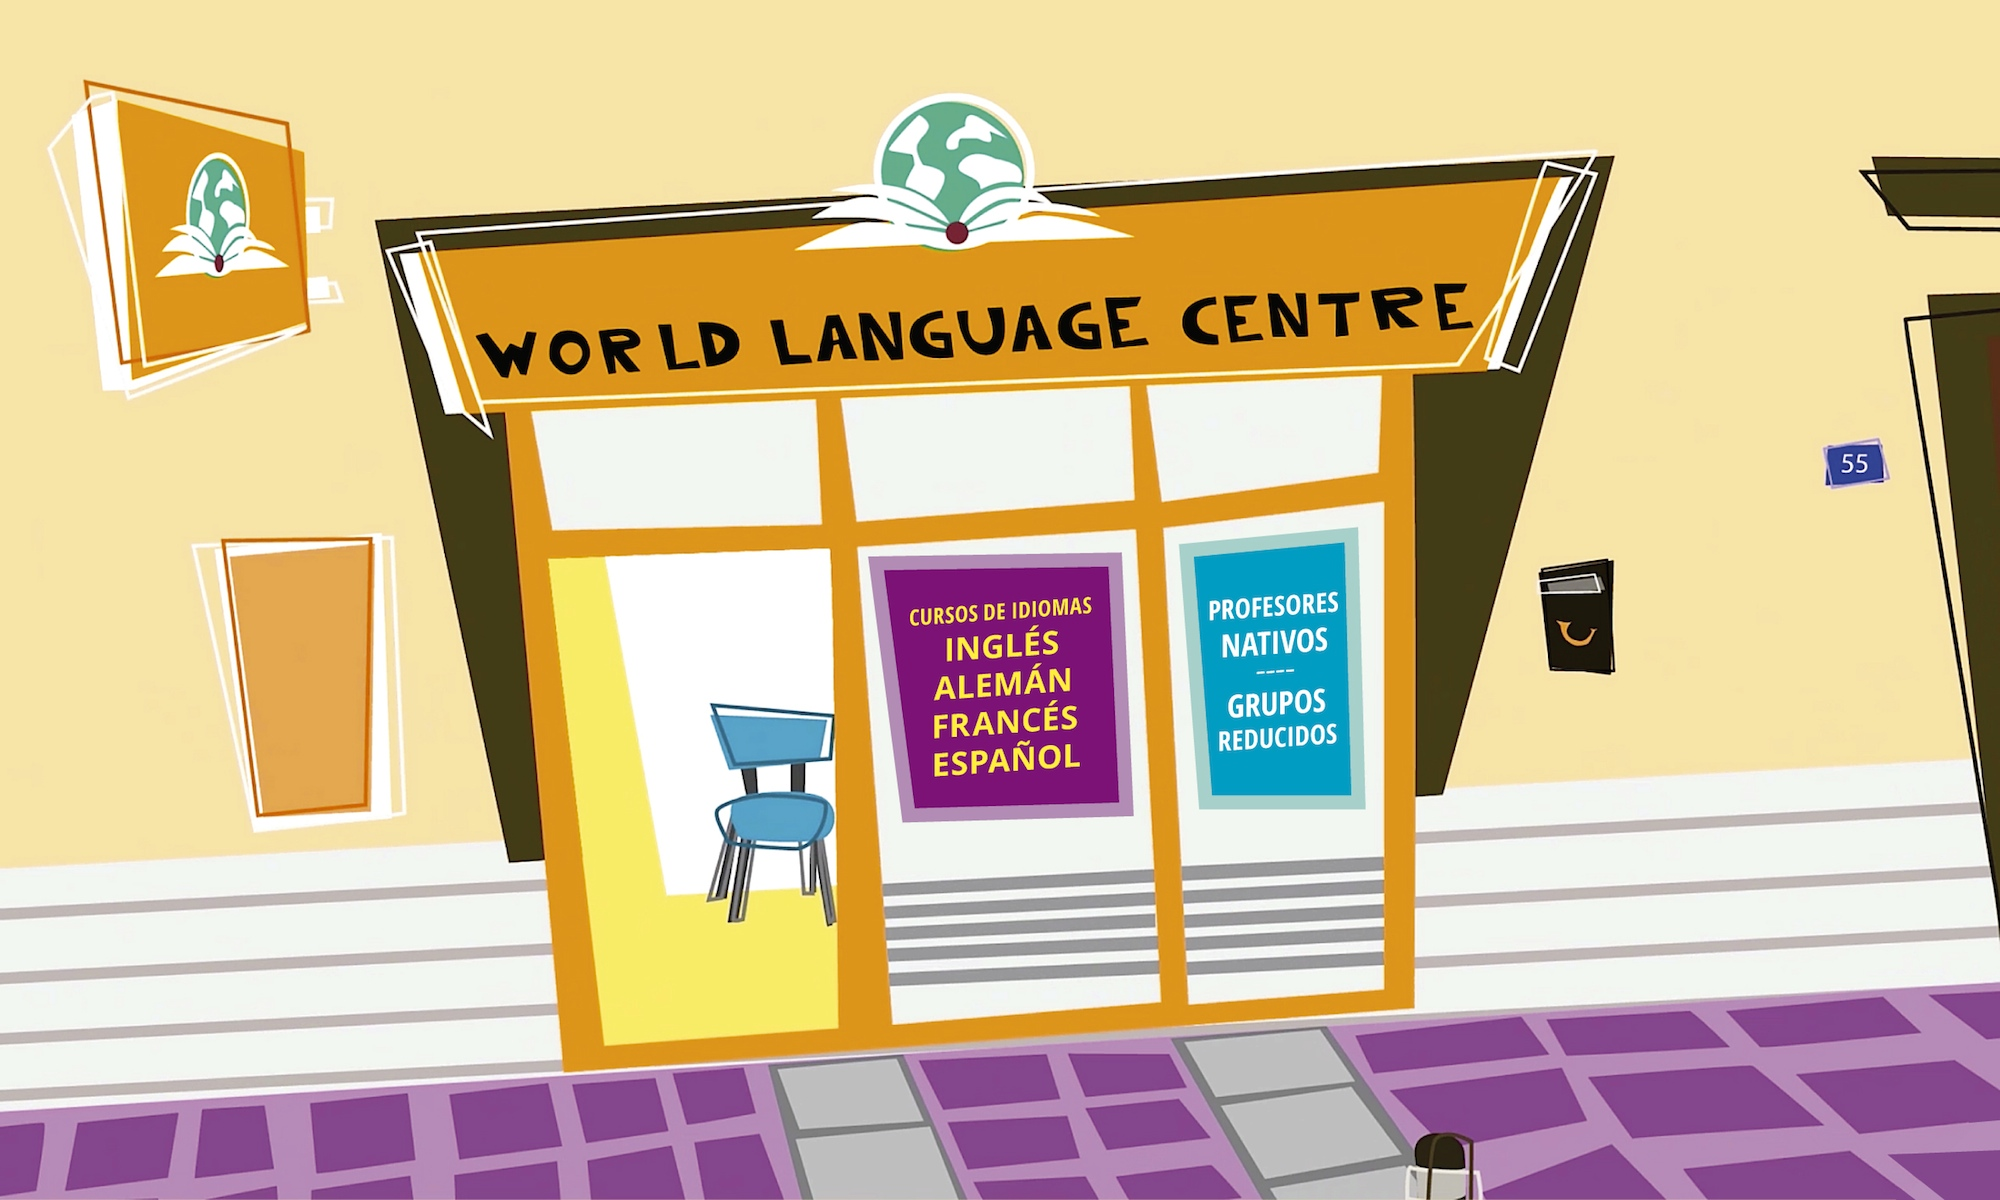 World Language Centre